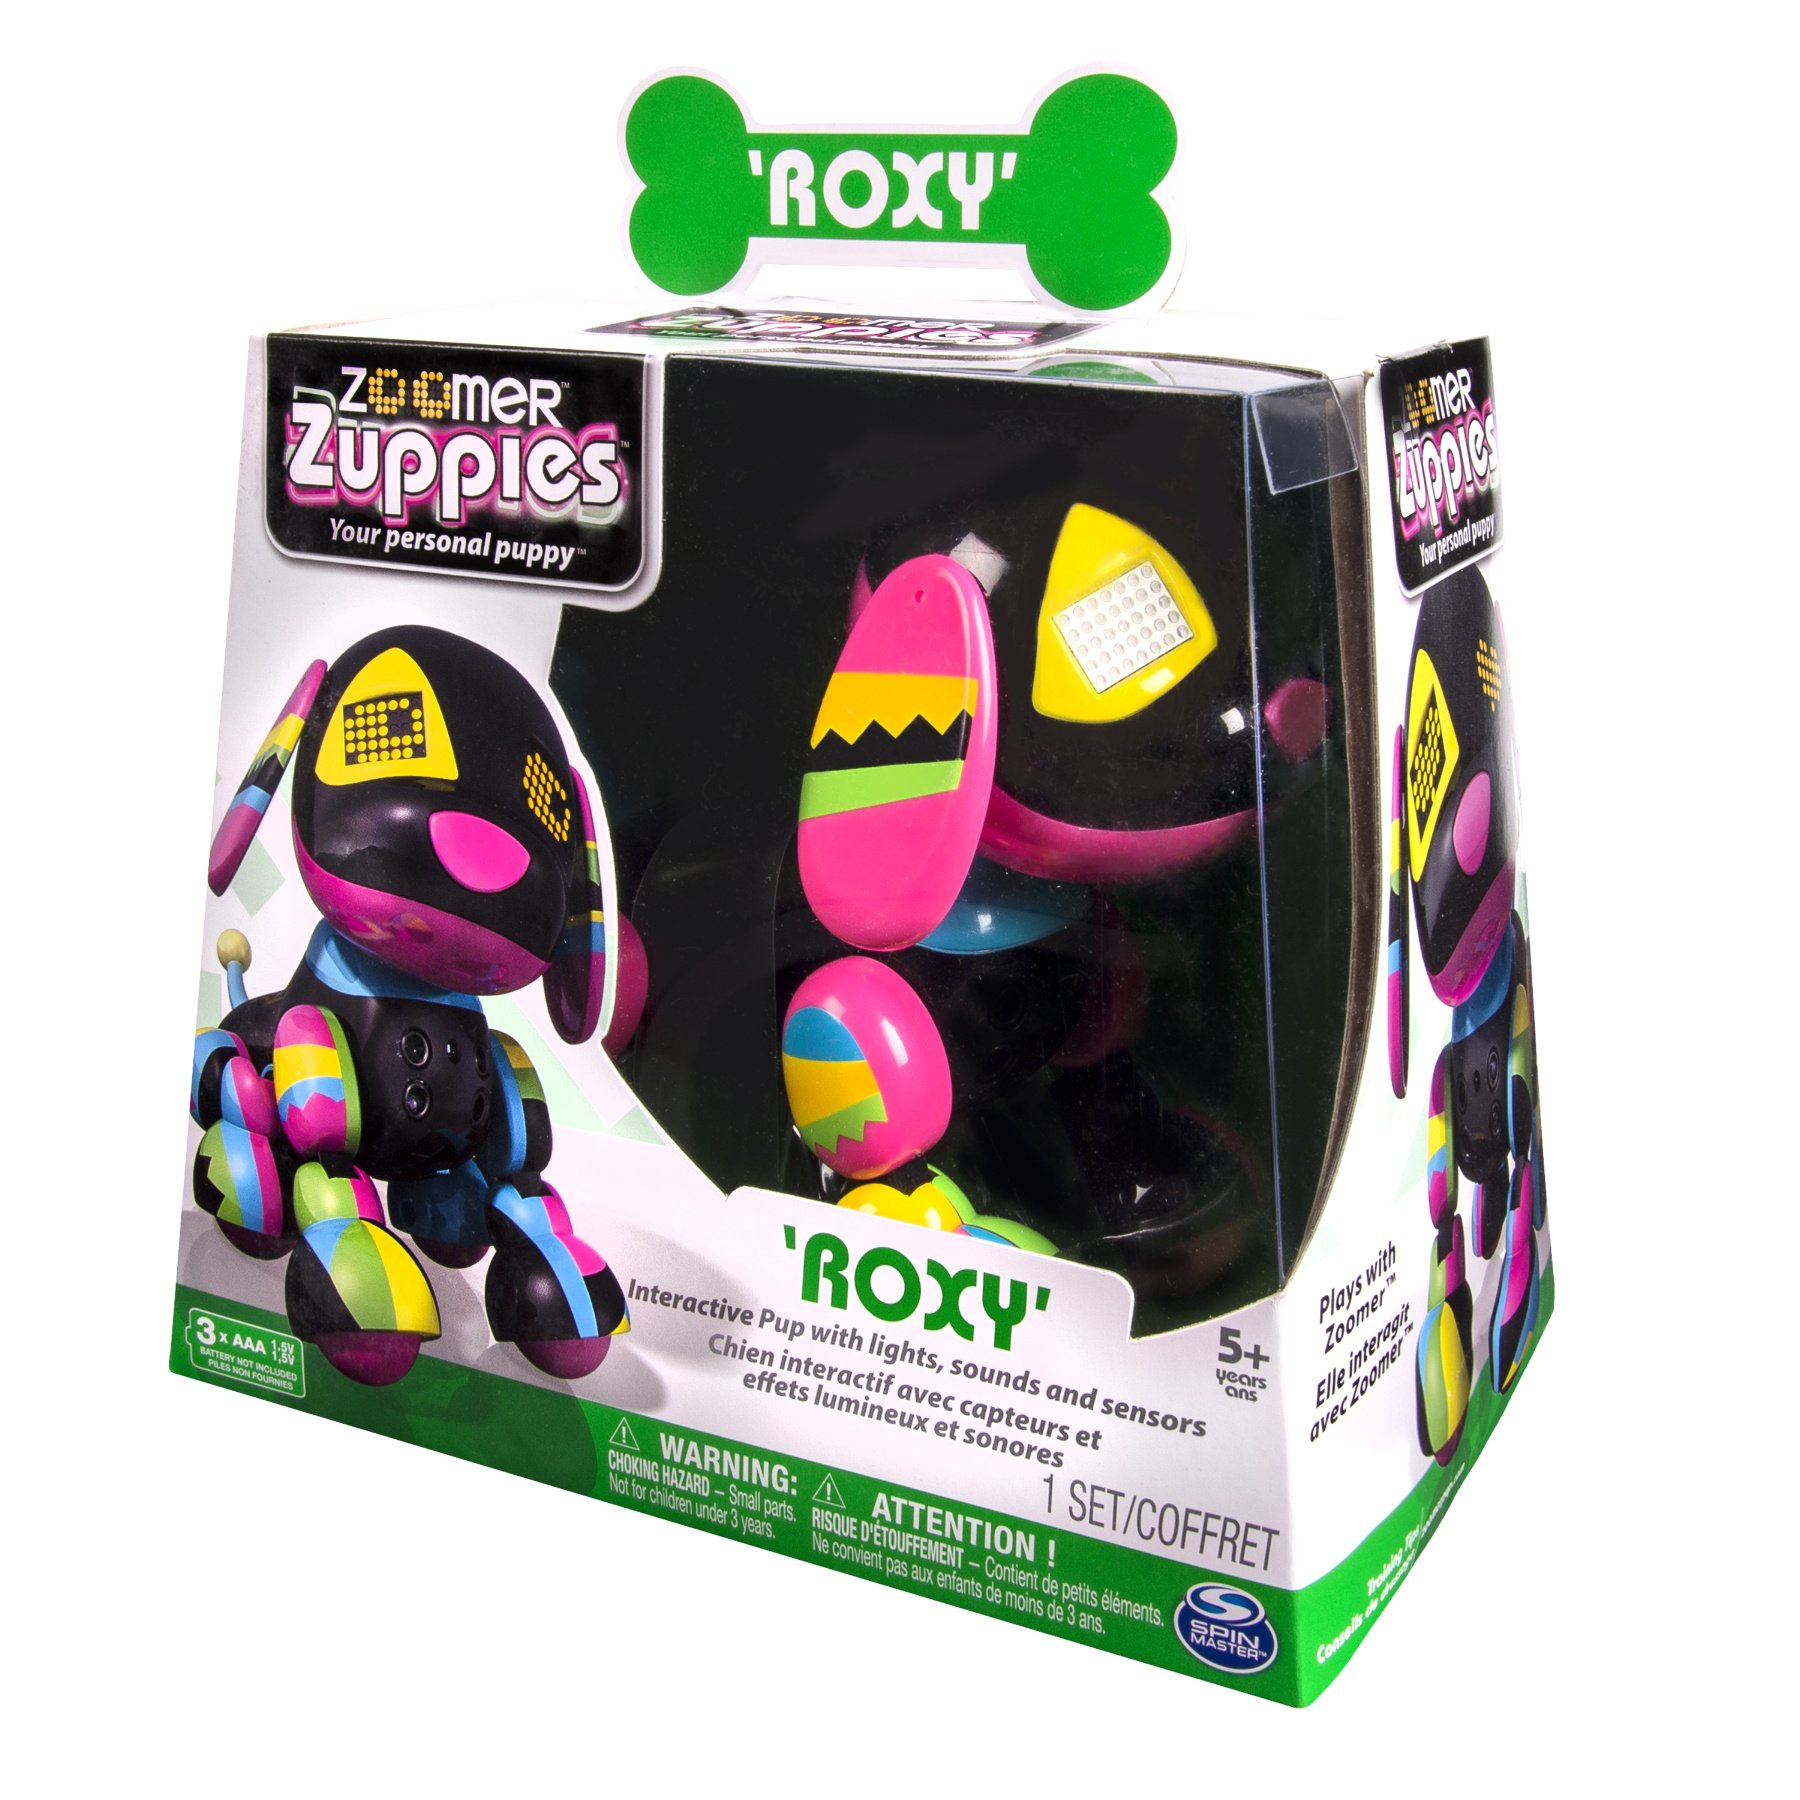 Zoomer Zuppies Interactive Puppy - Roxy by Zoomer (Image #4)